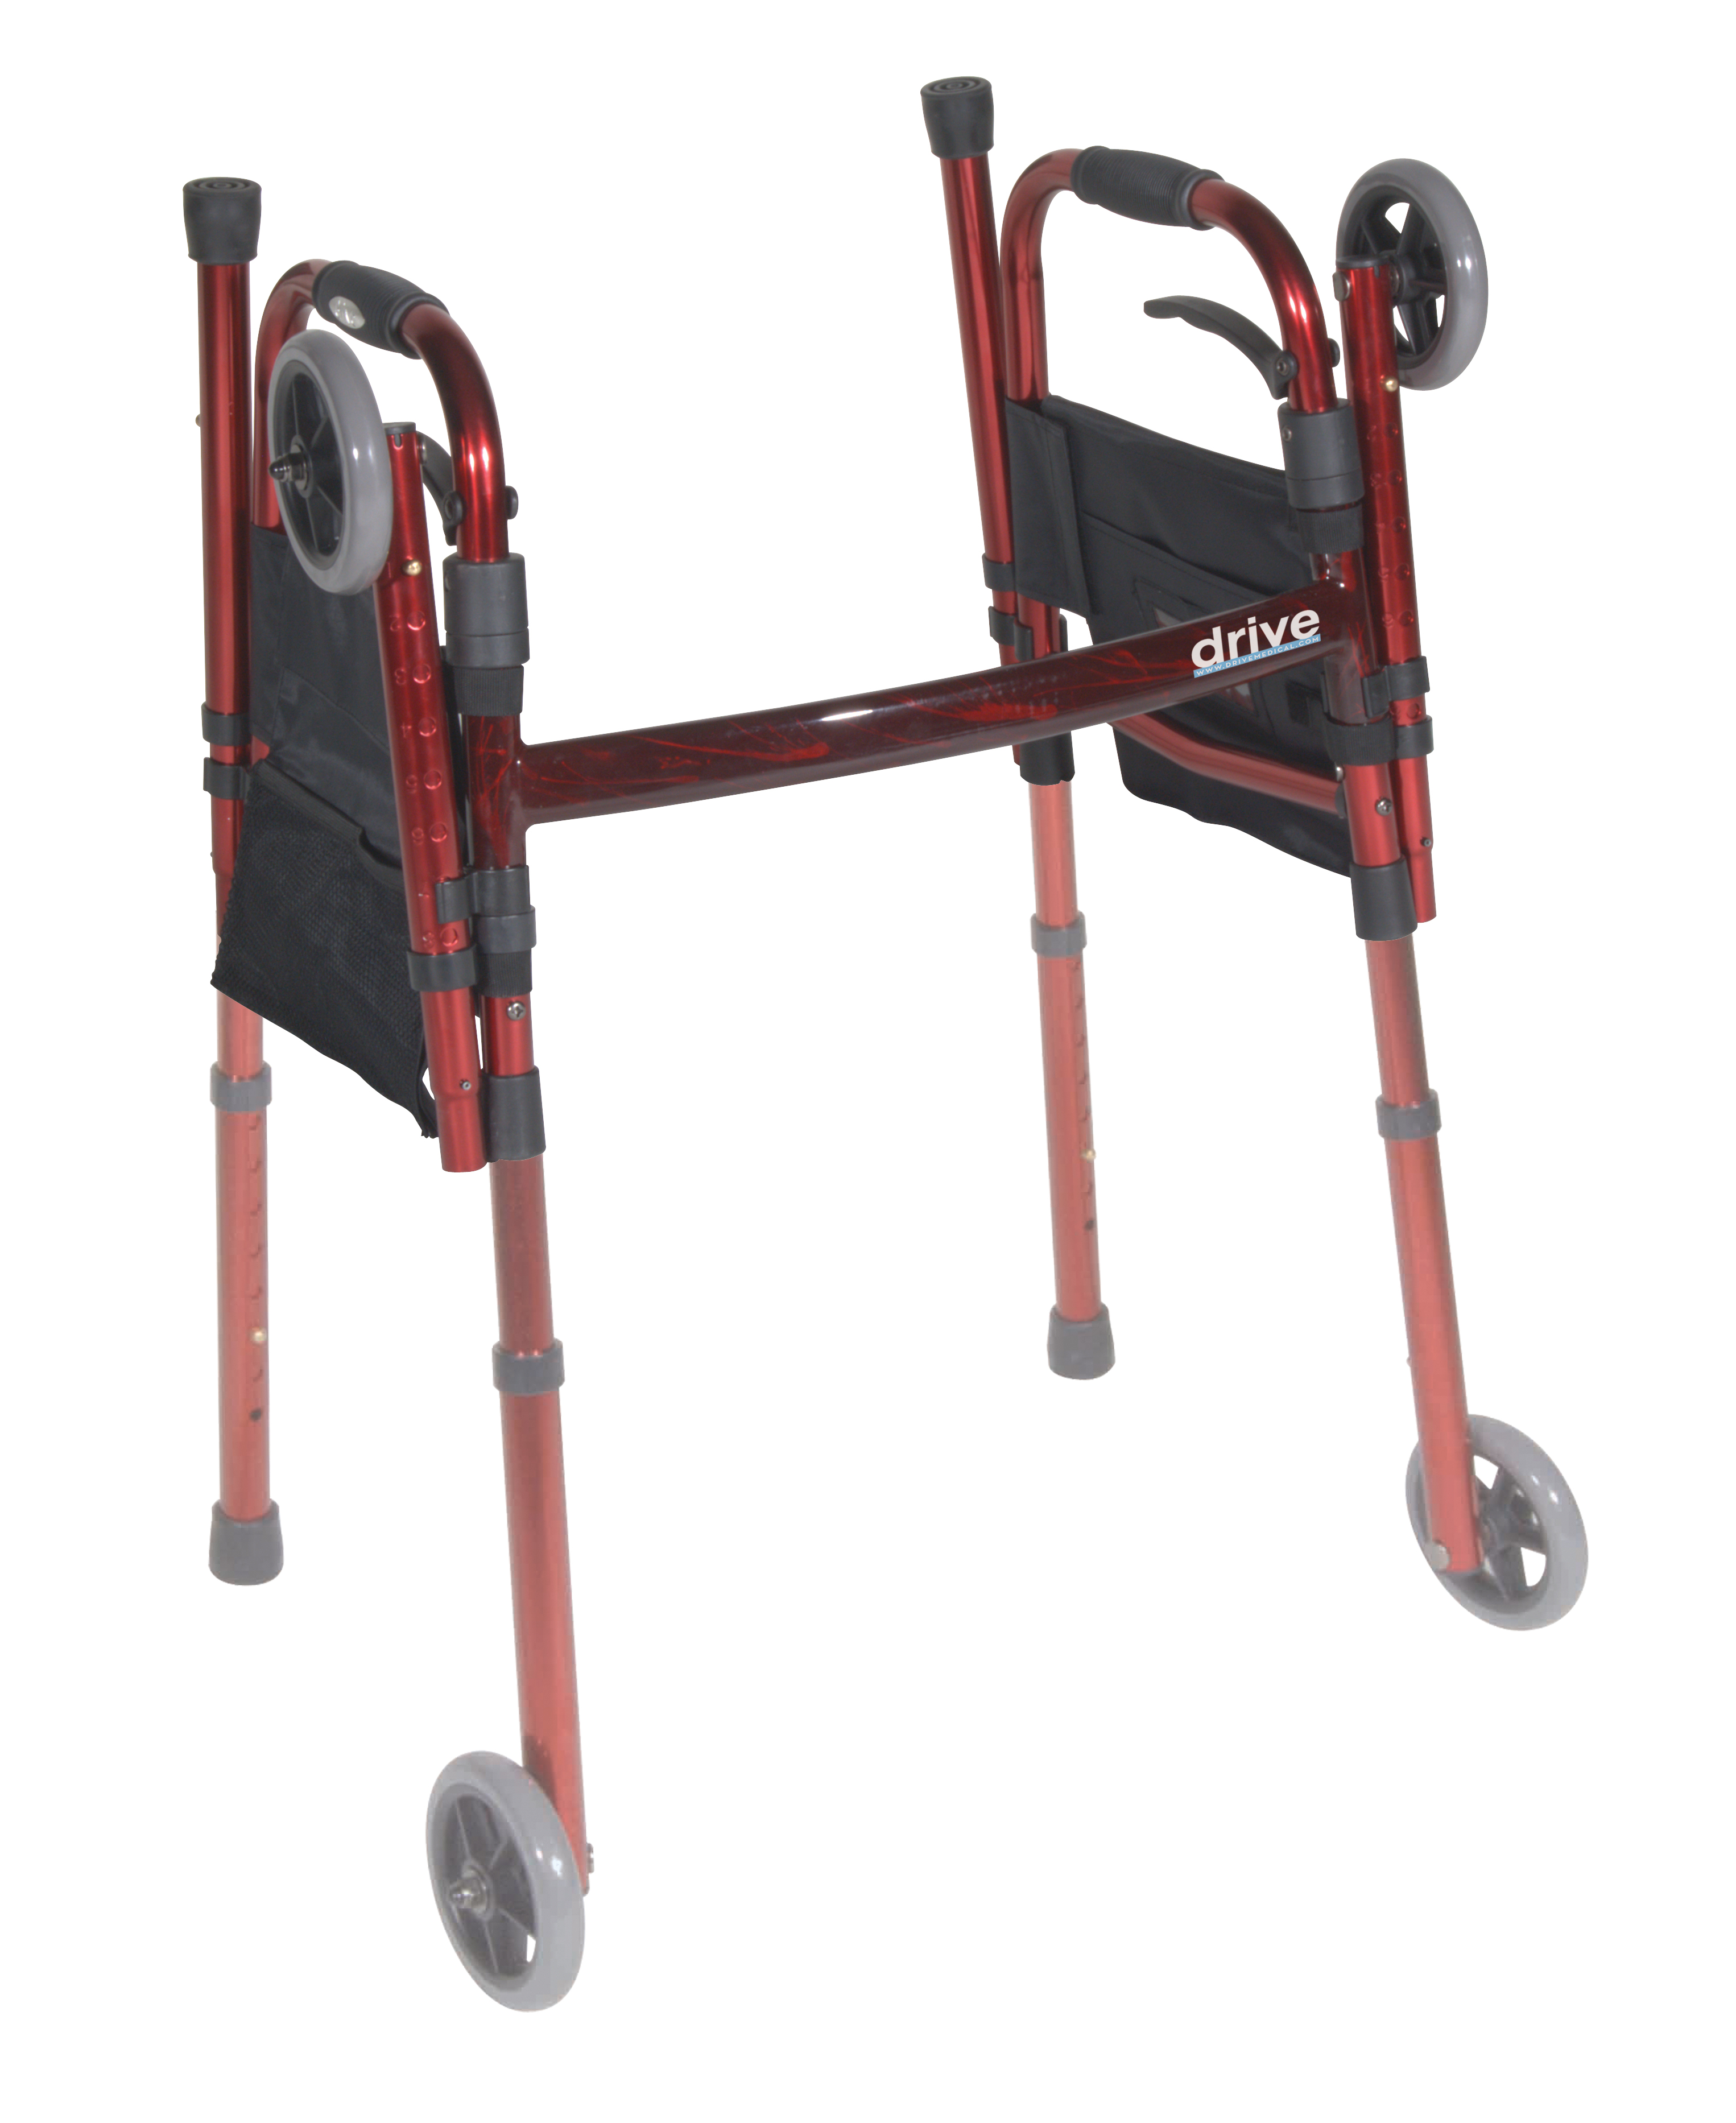 portable-folding-travel-walker-with-5-wheels-and-fold-up-legs-rtl10263kdr-drive-medical-5.jpg